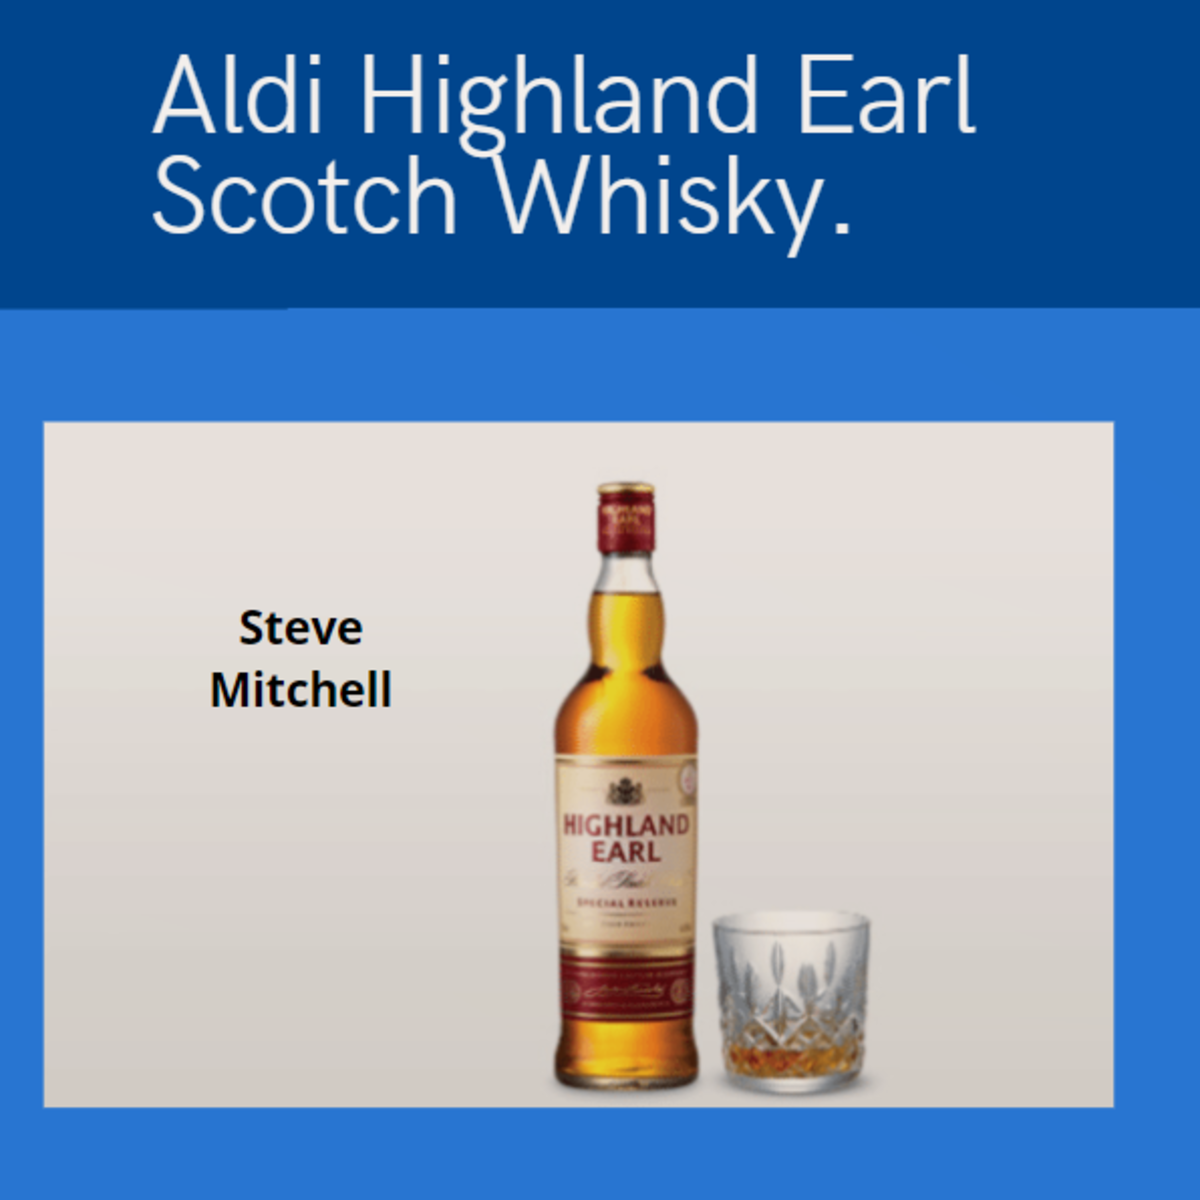 Aldi Highland Earl Scotch Whisky.